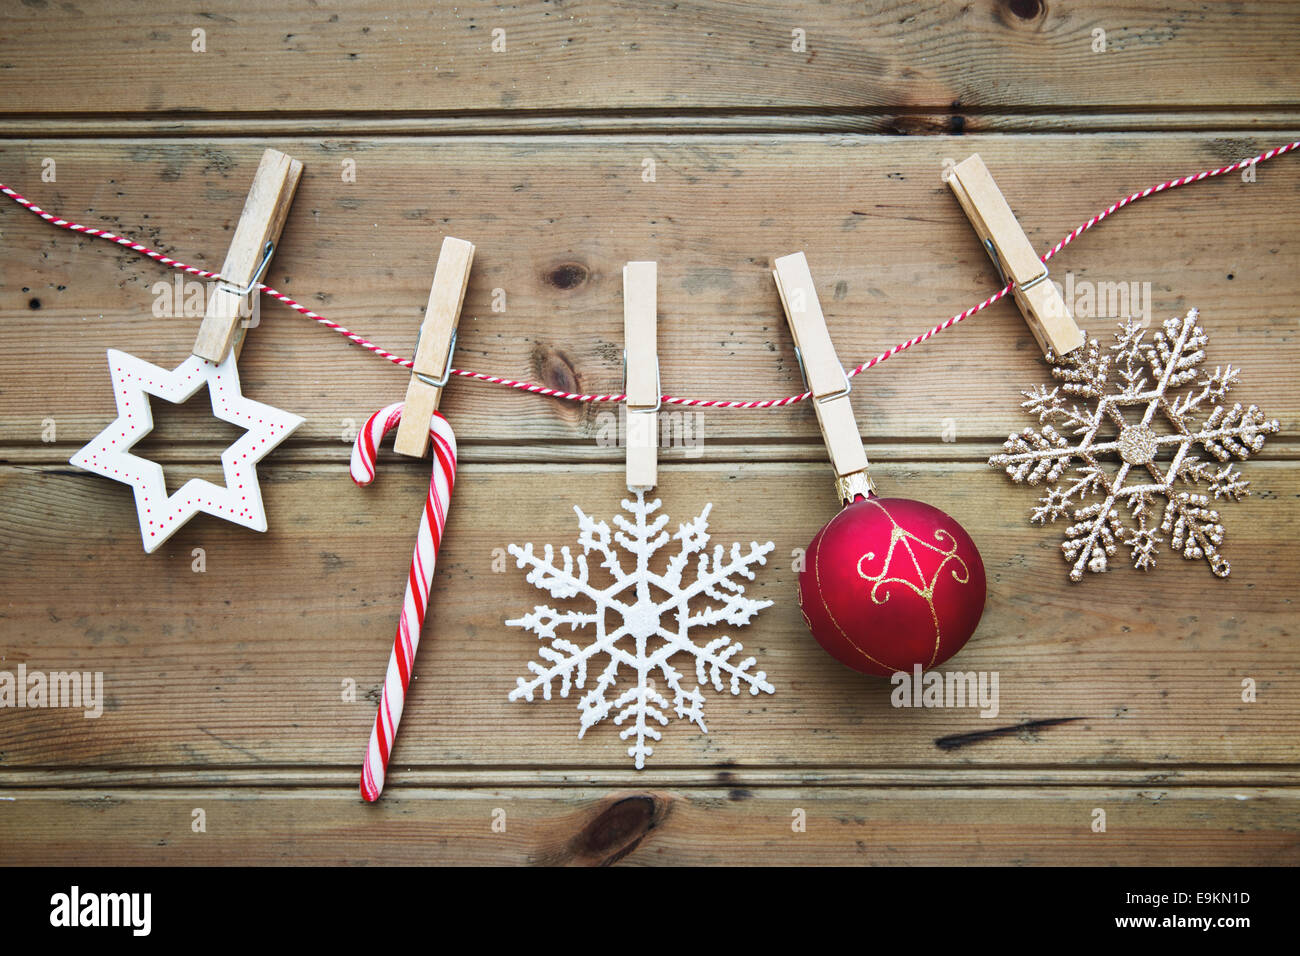 Christmas ornaments on a wooden background - Stock Image